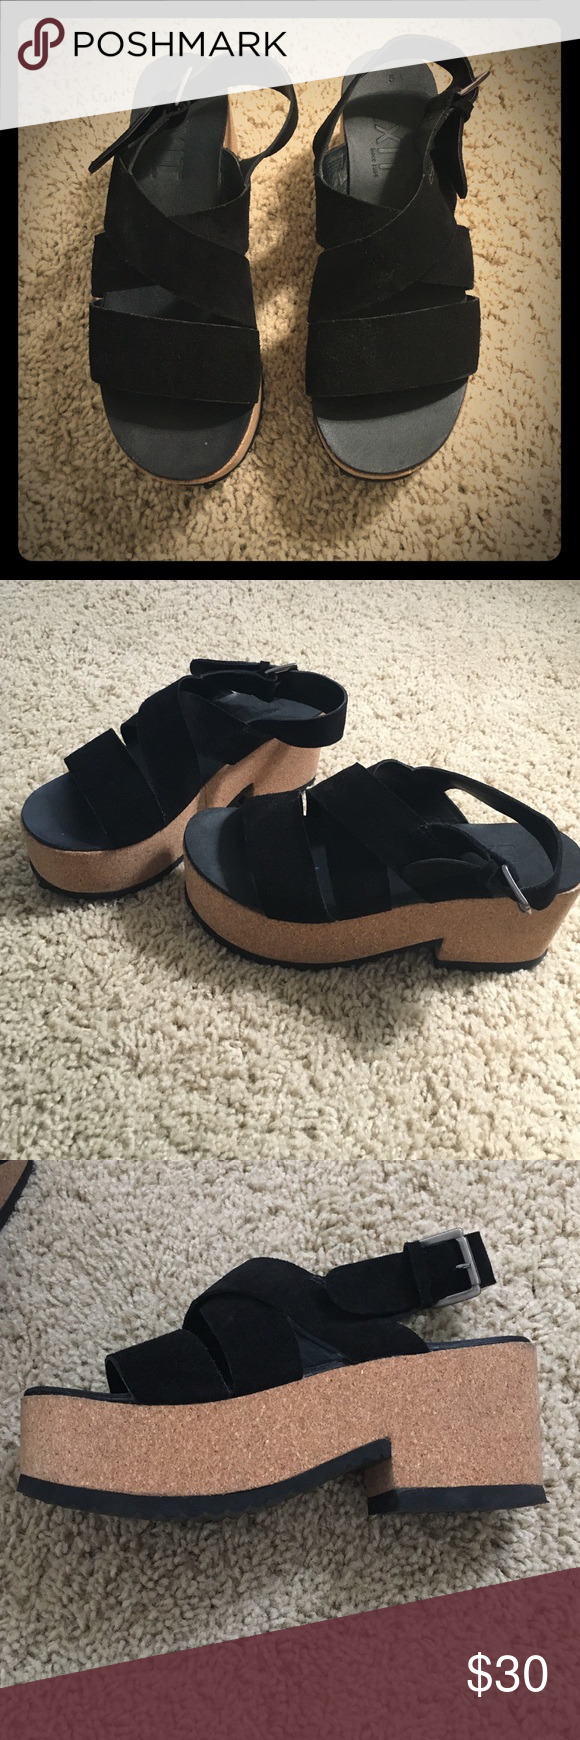 Black platform sandals Super comfortable! suede stripes, cork sole. Perfect conditions! Like new. Exit Shoes Platforms